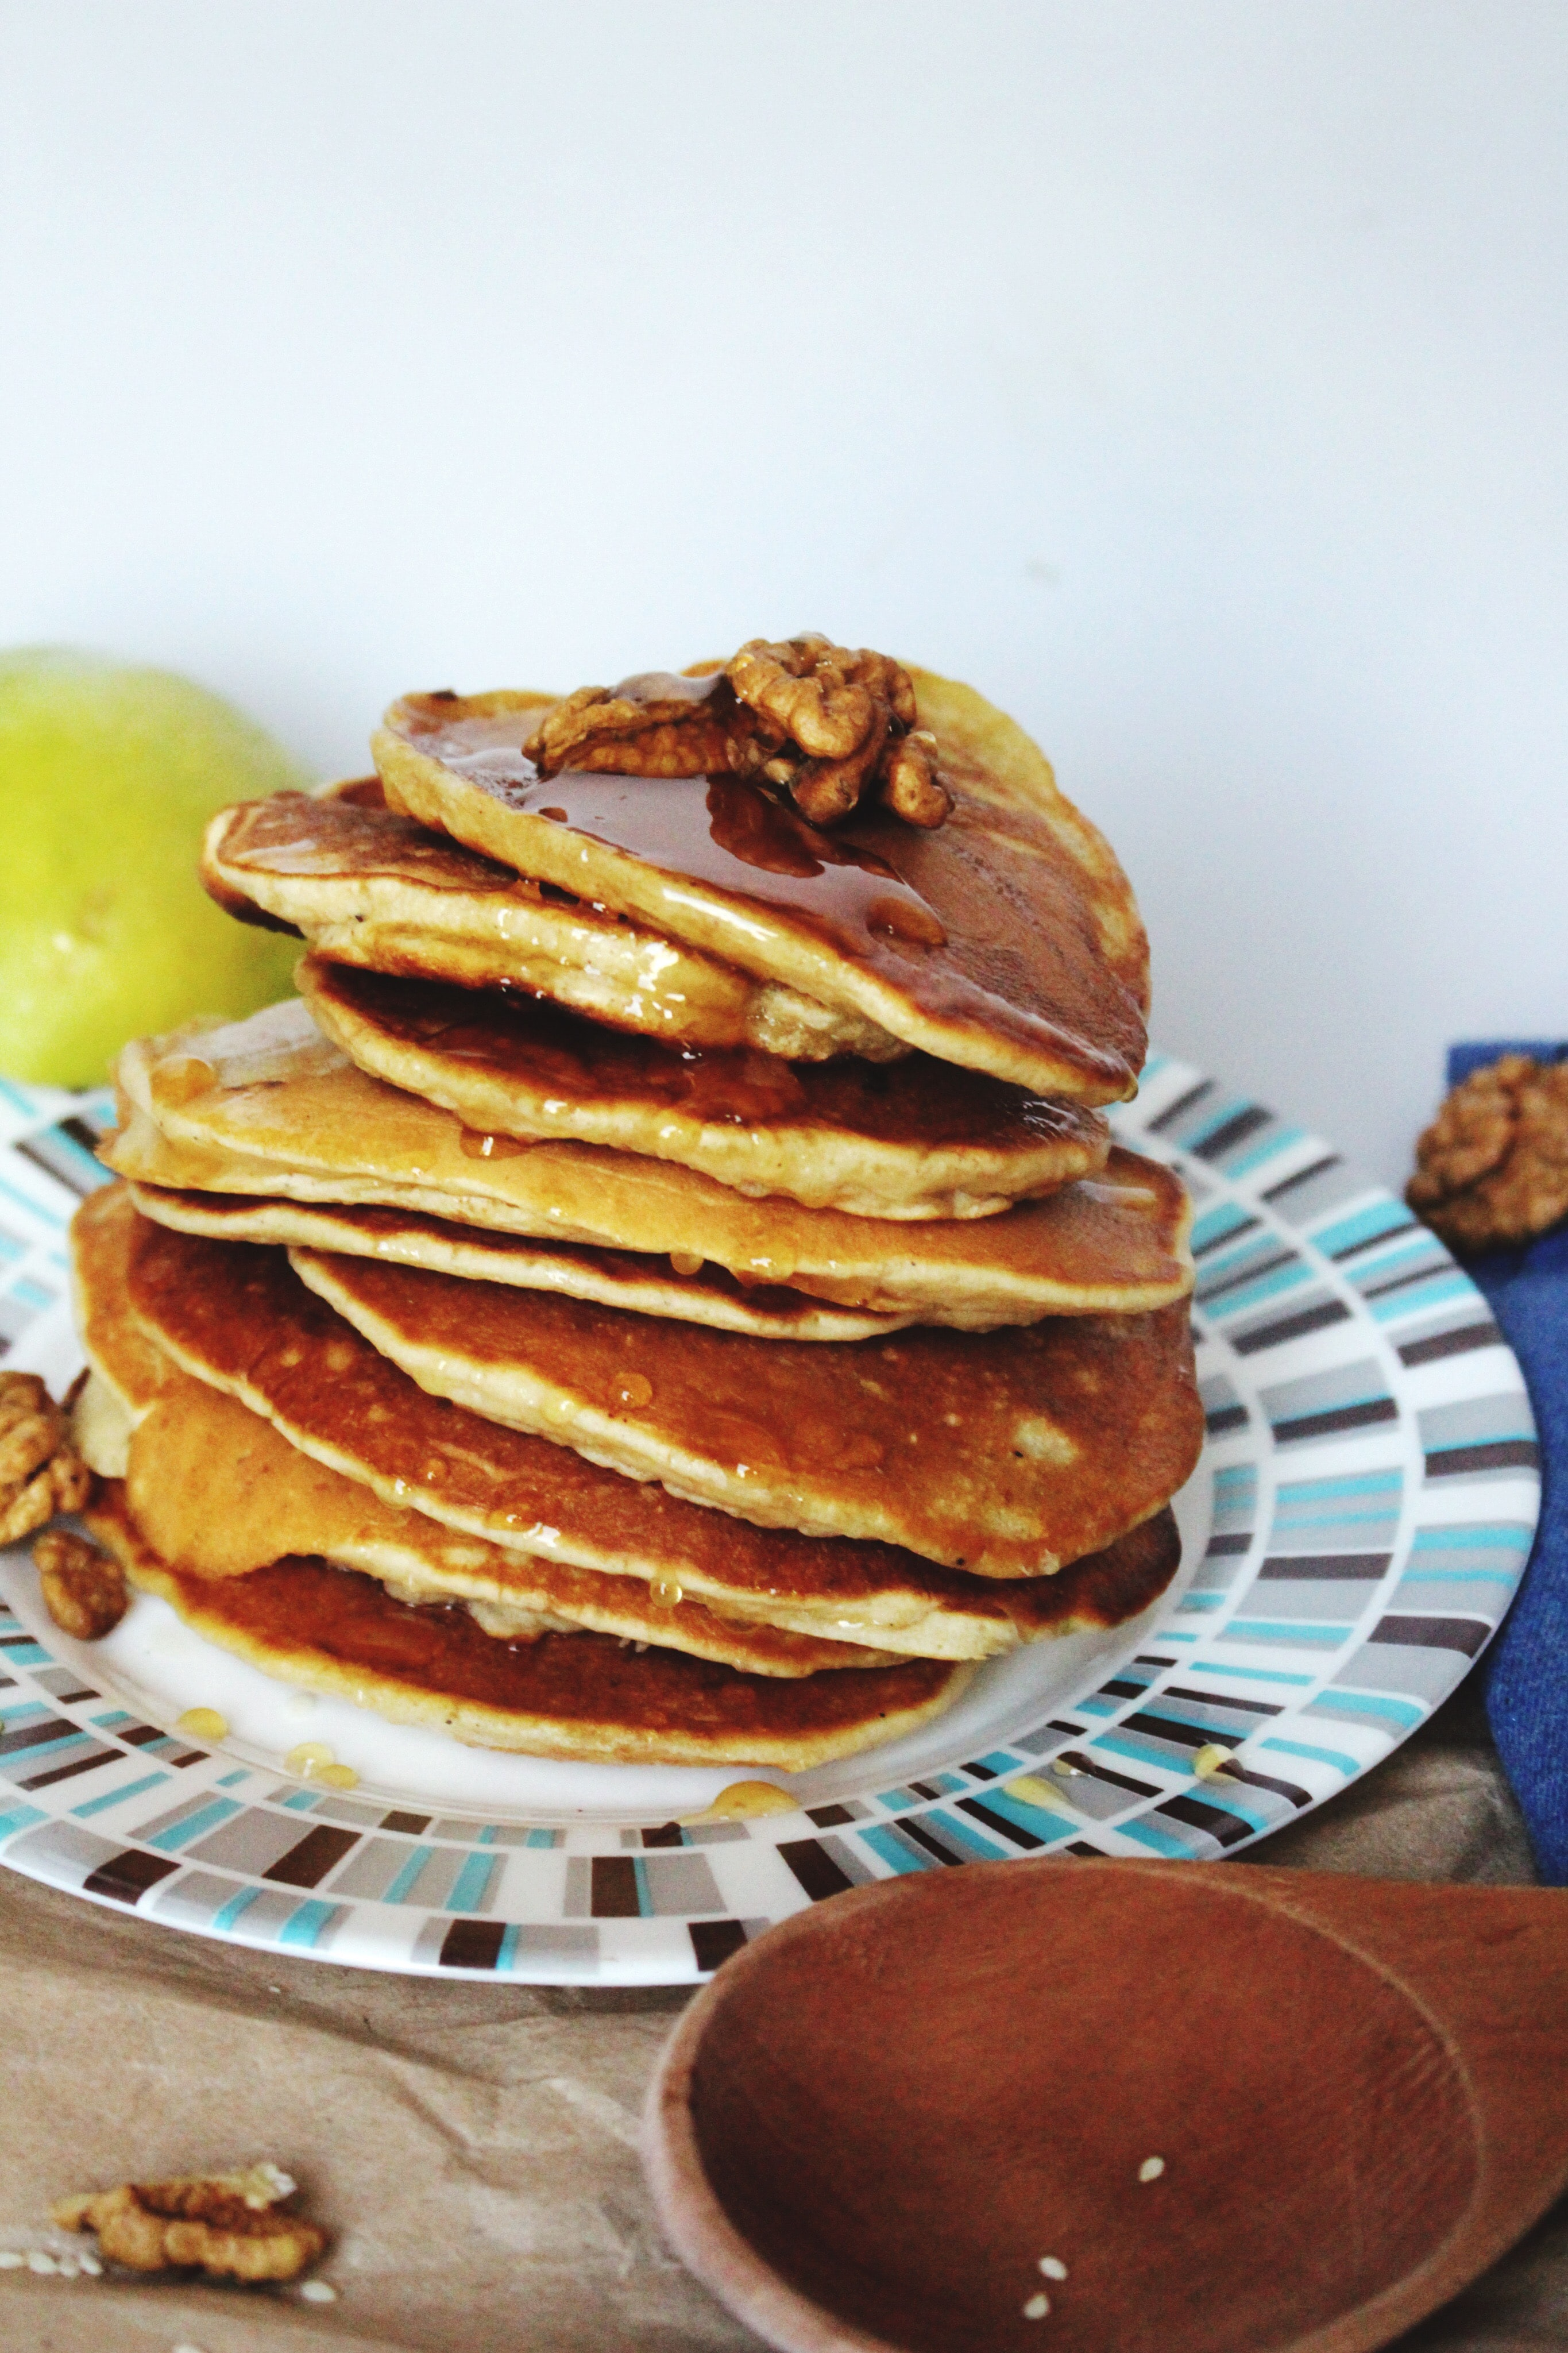 pancakes on plate near brown saucer